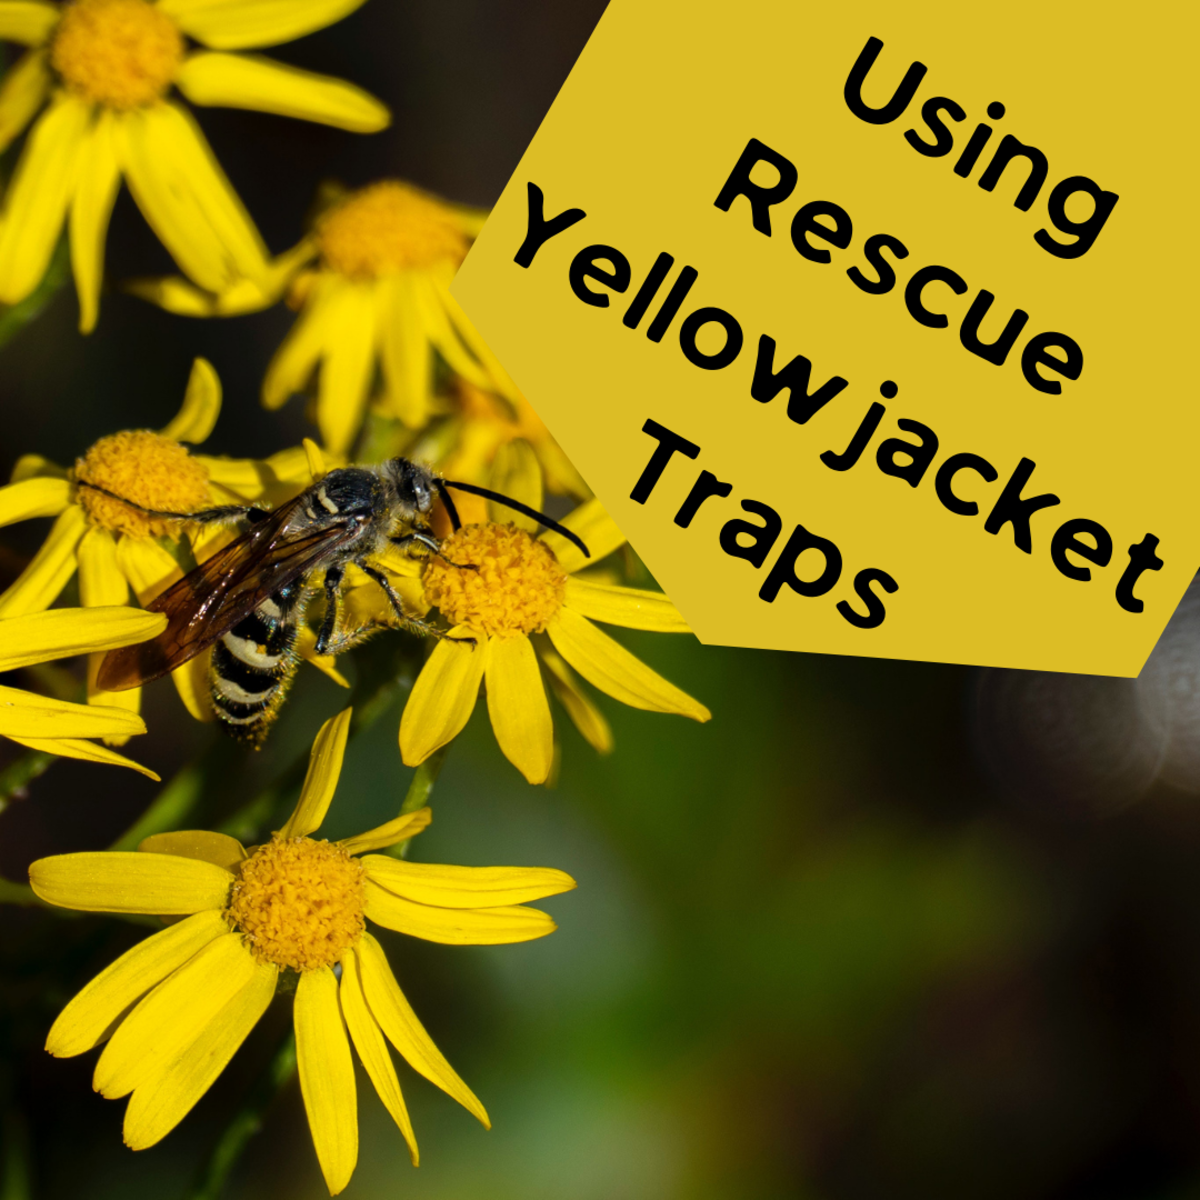 Learn how to get rid of your yellowjacket issue once and for all with Rescue Yellowjacket Traps